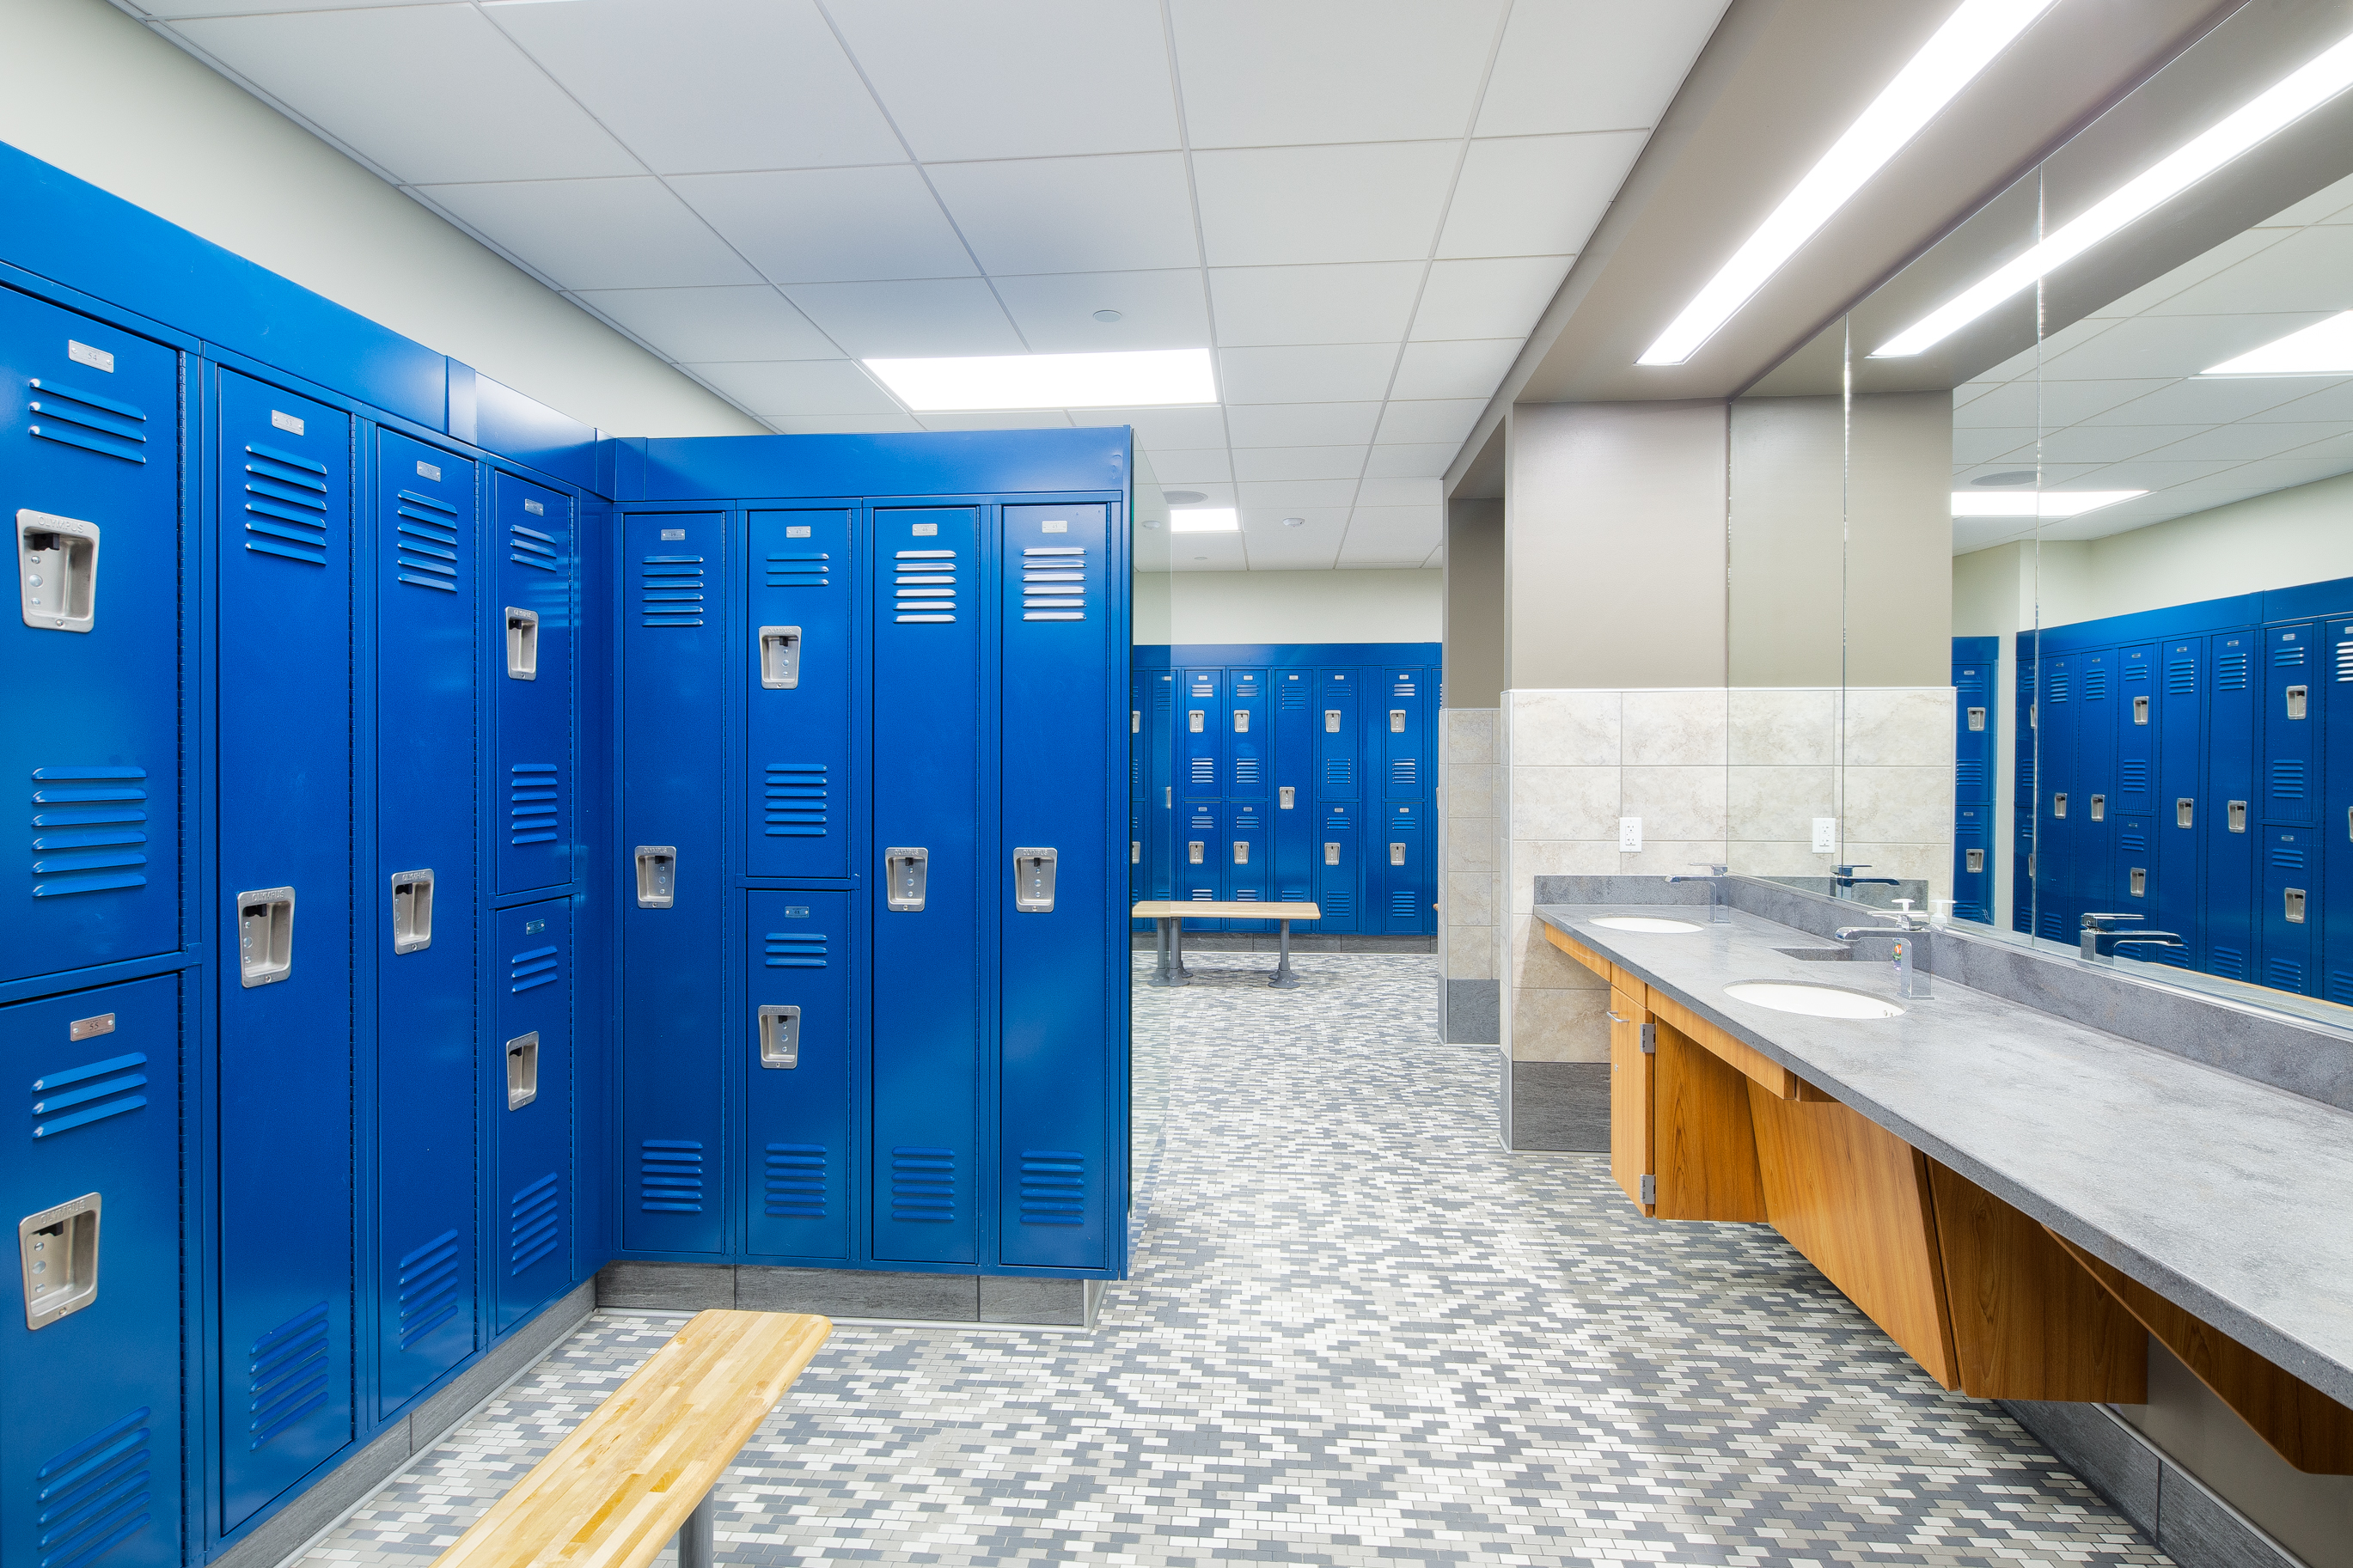 Energy Wellness Center locker room with blue lockers